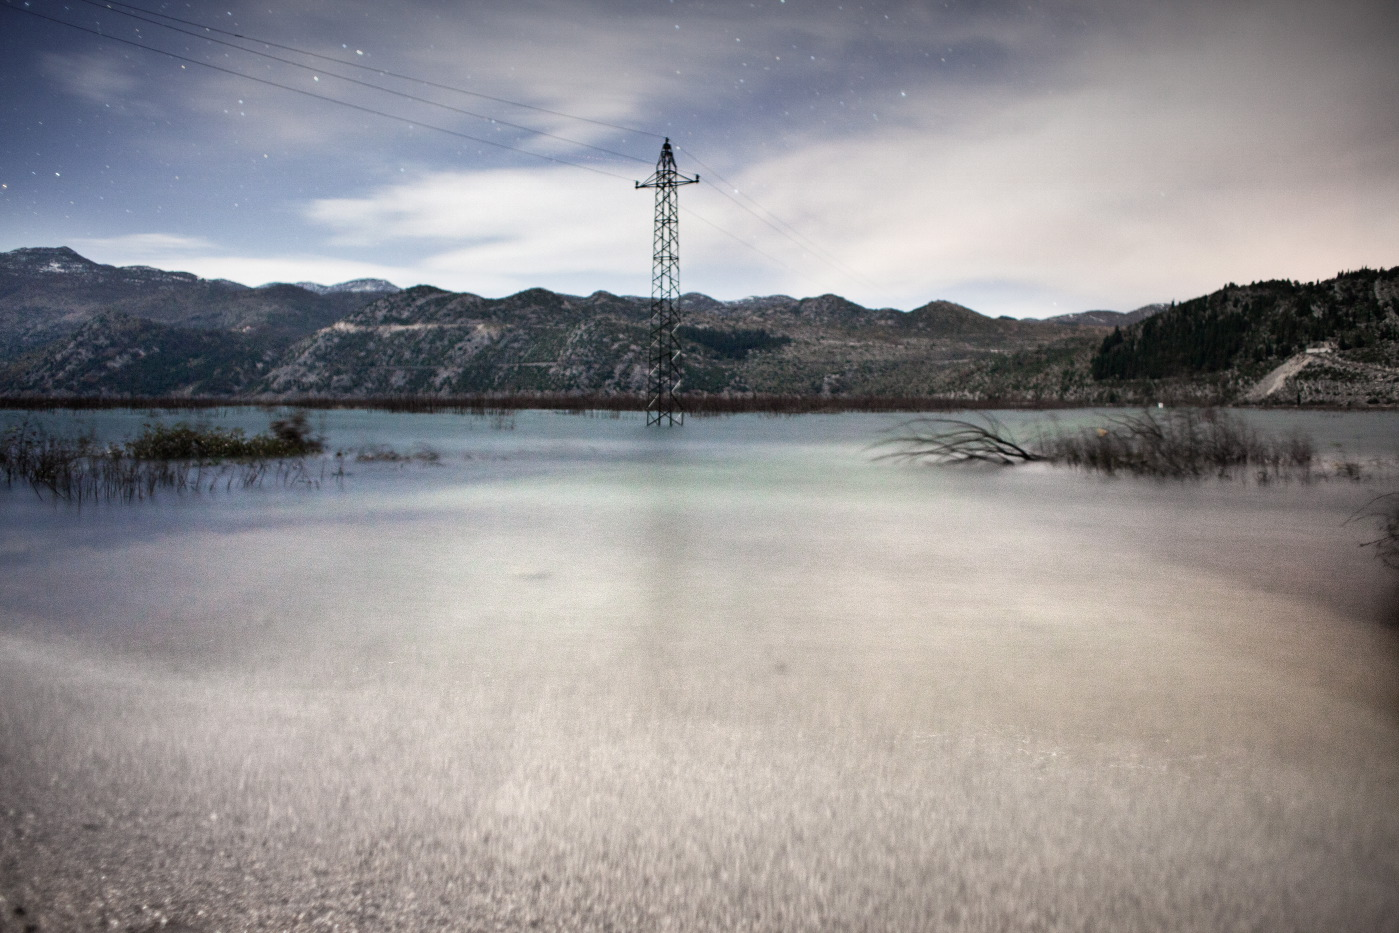 """A pylon stands in the middle of the """"new lake"""". Ravno, Bosnia and Herzegovina 2010. © Matteo Bastianelli"""